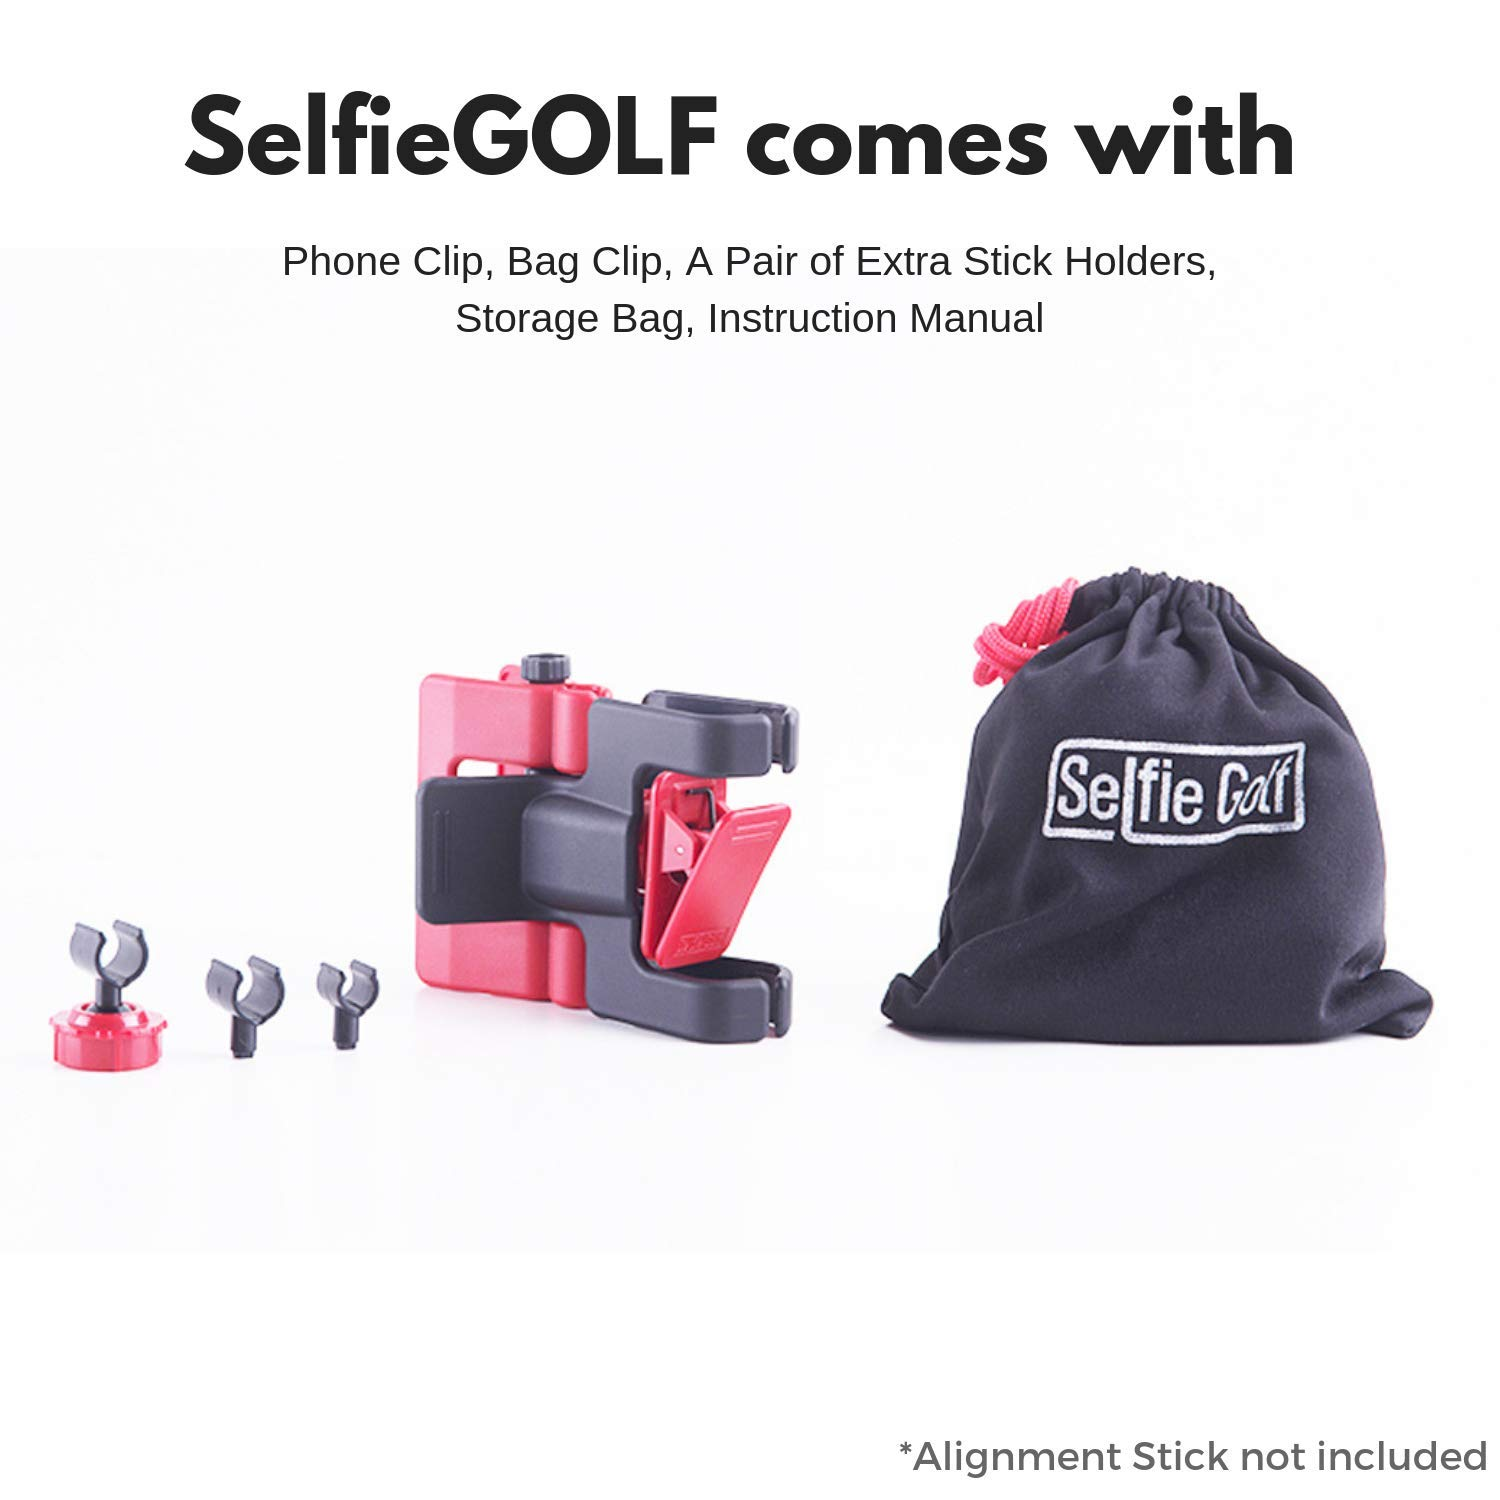 Record Golf Swing - Cell Phone Clip Holder and Training Aid by SelfieGOLF TM - Golf Accessories | The Winner of The PGA Best of 2017 | Compatible with Any Smart Phone (Red/Black) by Selfie Golf (Image #7)